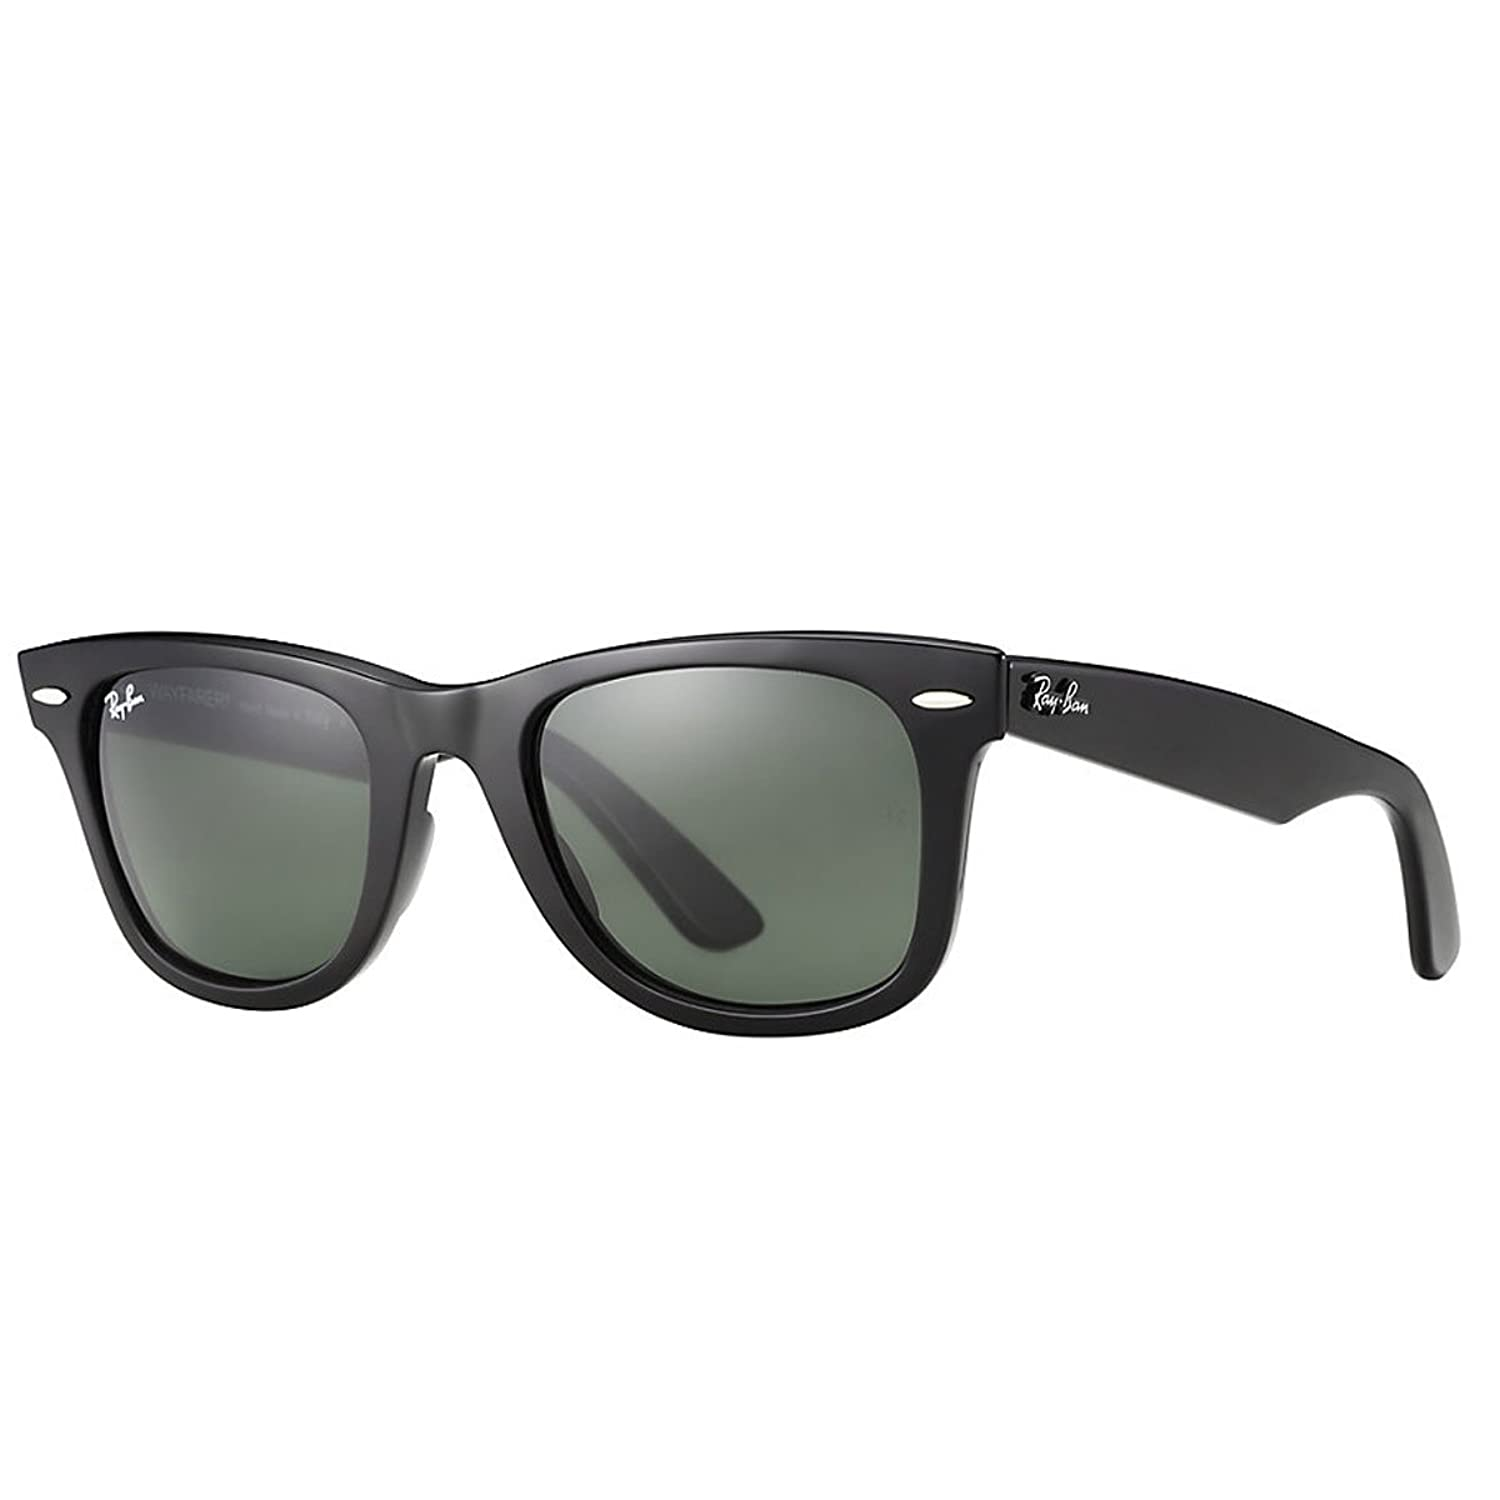 buy ray ban wayfarer sunglasses online  ray ban rb2140 original wayfarer sunglasses